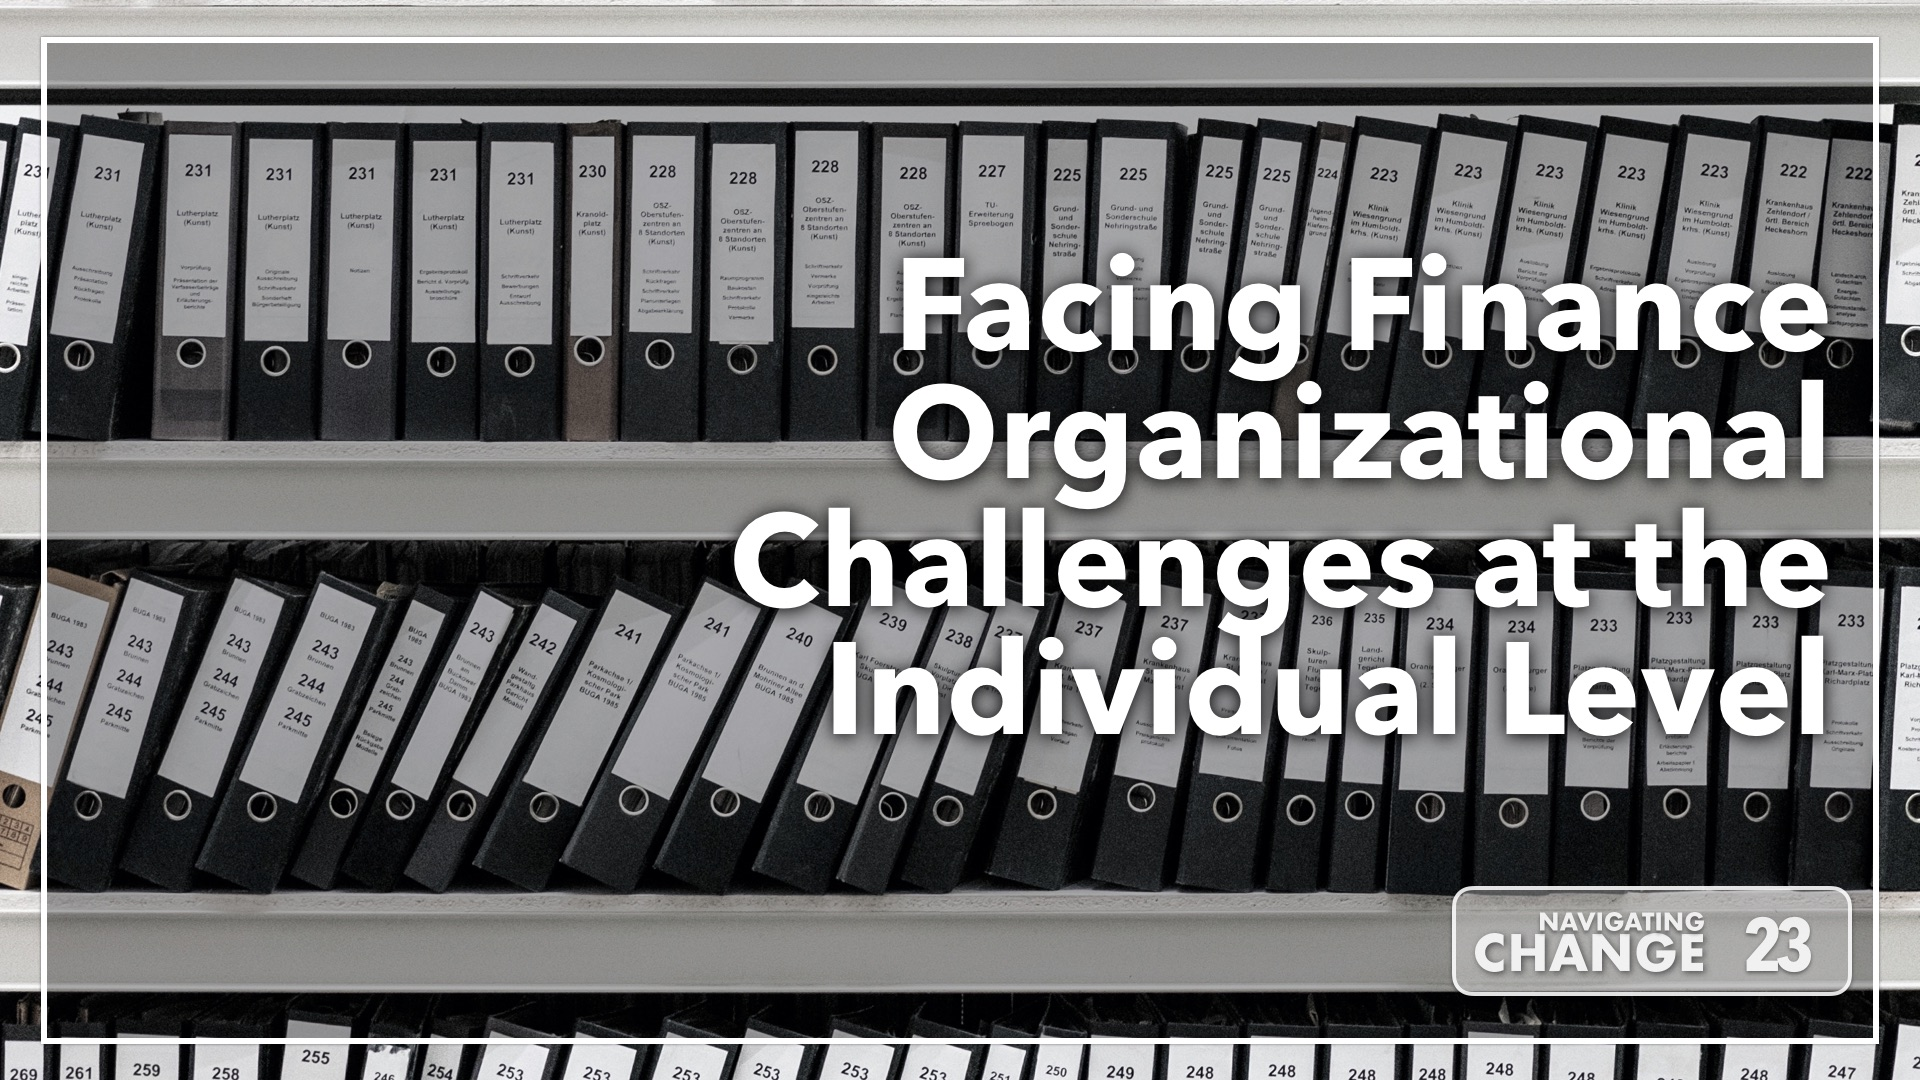 Listen to Facing Finance Organizational Challenges at the Individual Level on Navigating Change The Education Podcast